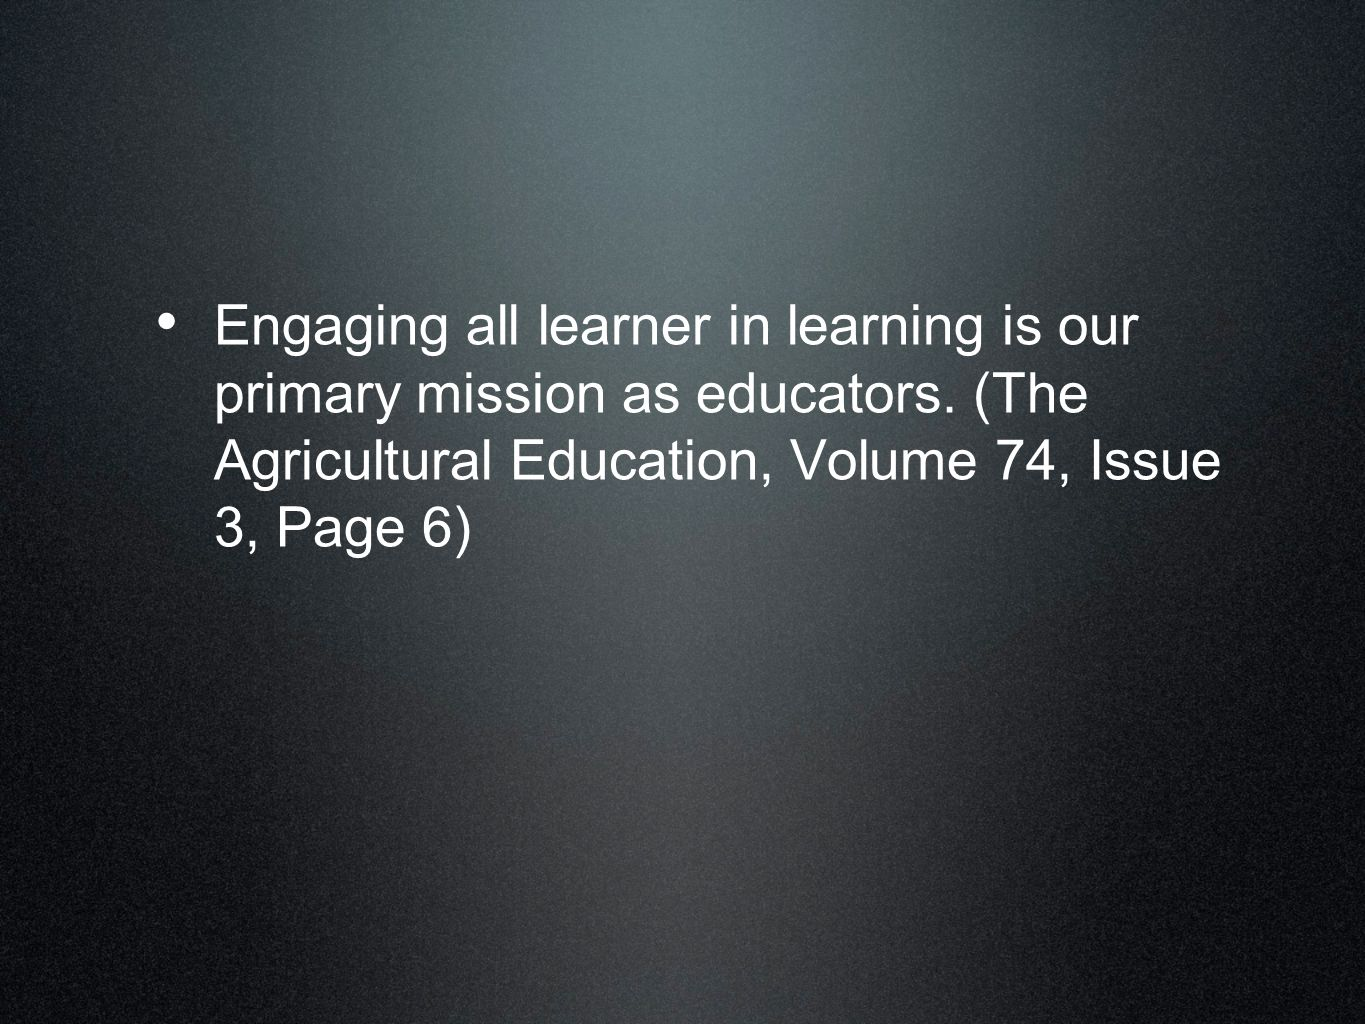 Engaging all learner in learning is our primary mission as educators.